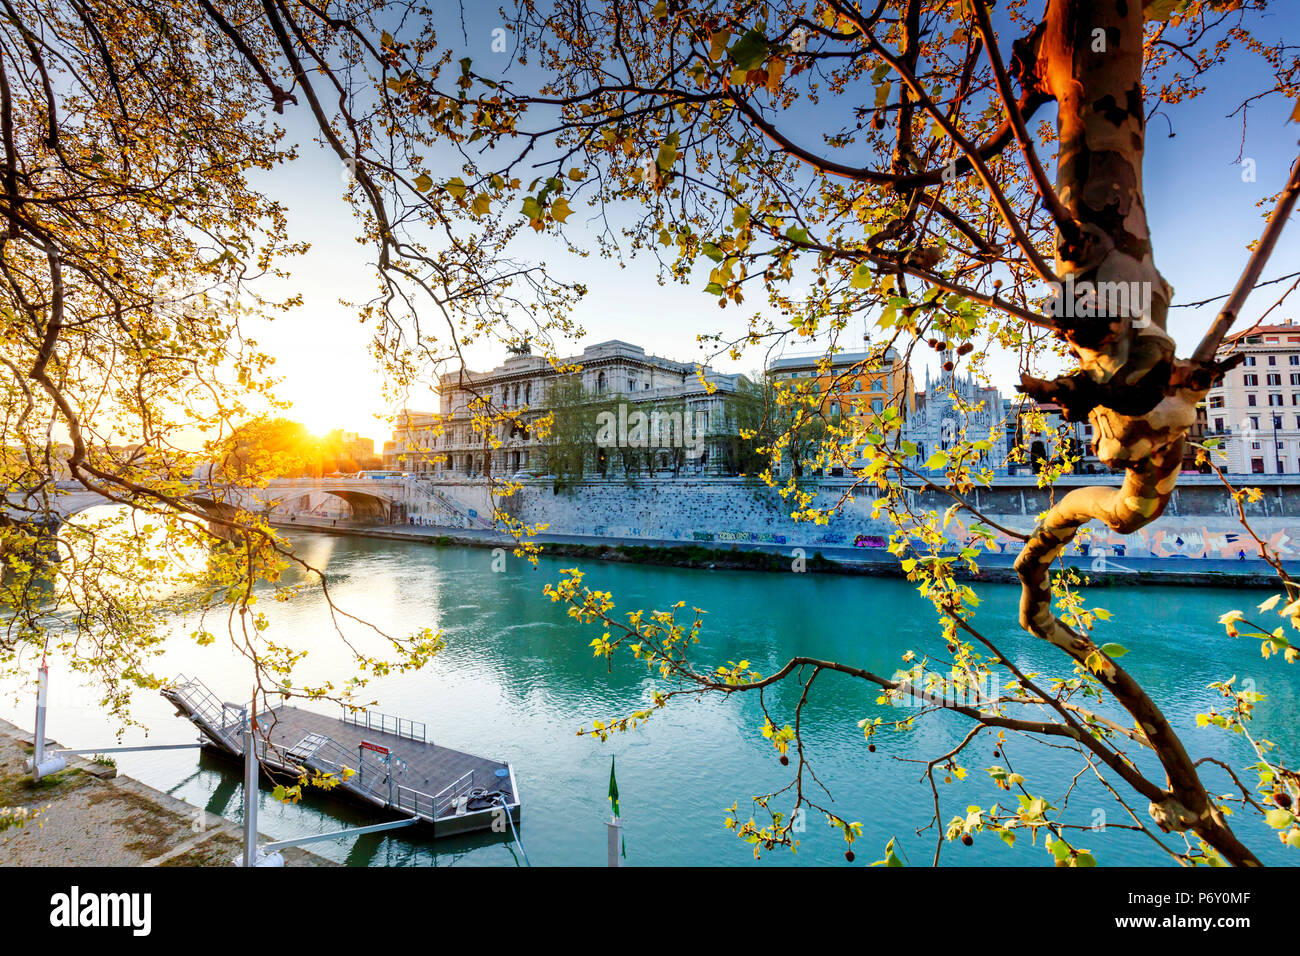 Italy, Rome, law court reflecting on Tevere river - Stock Image